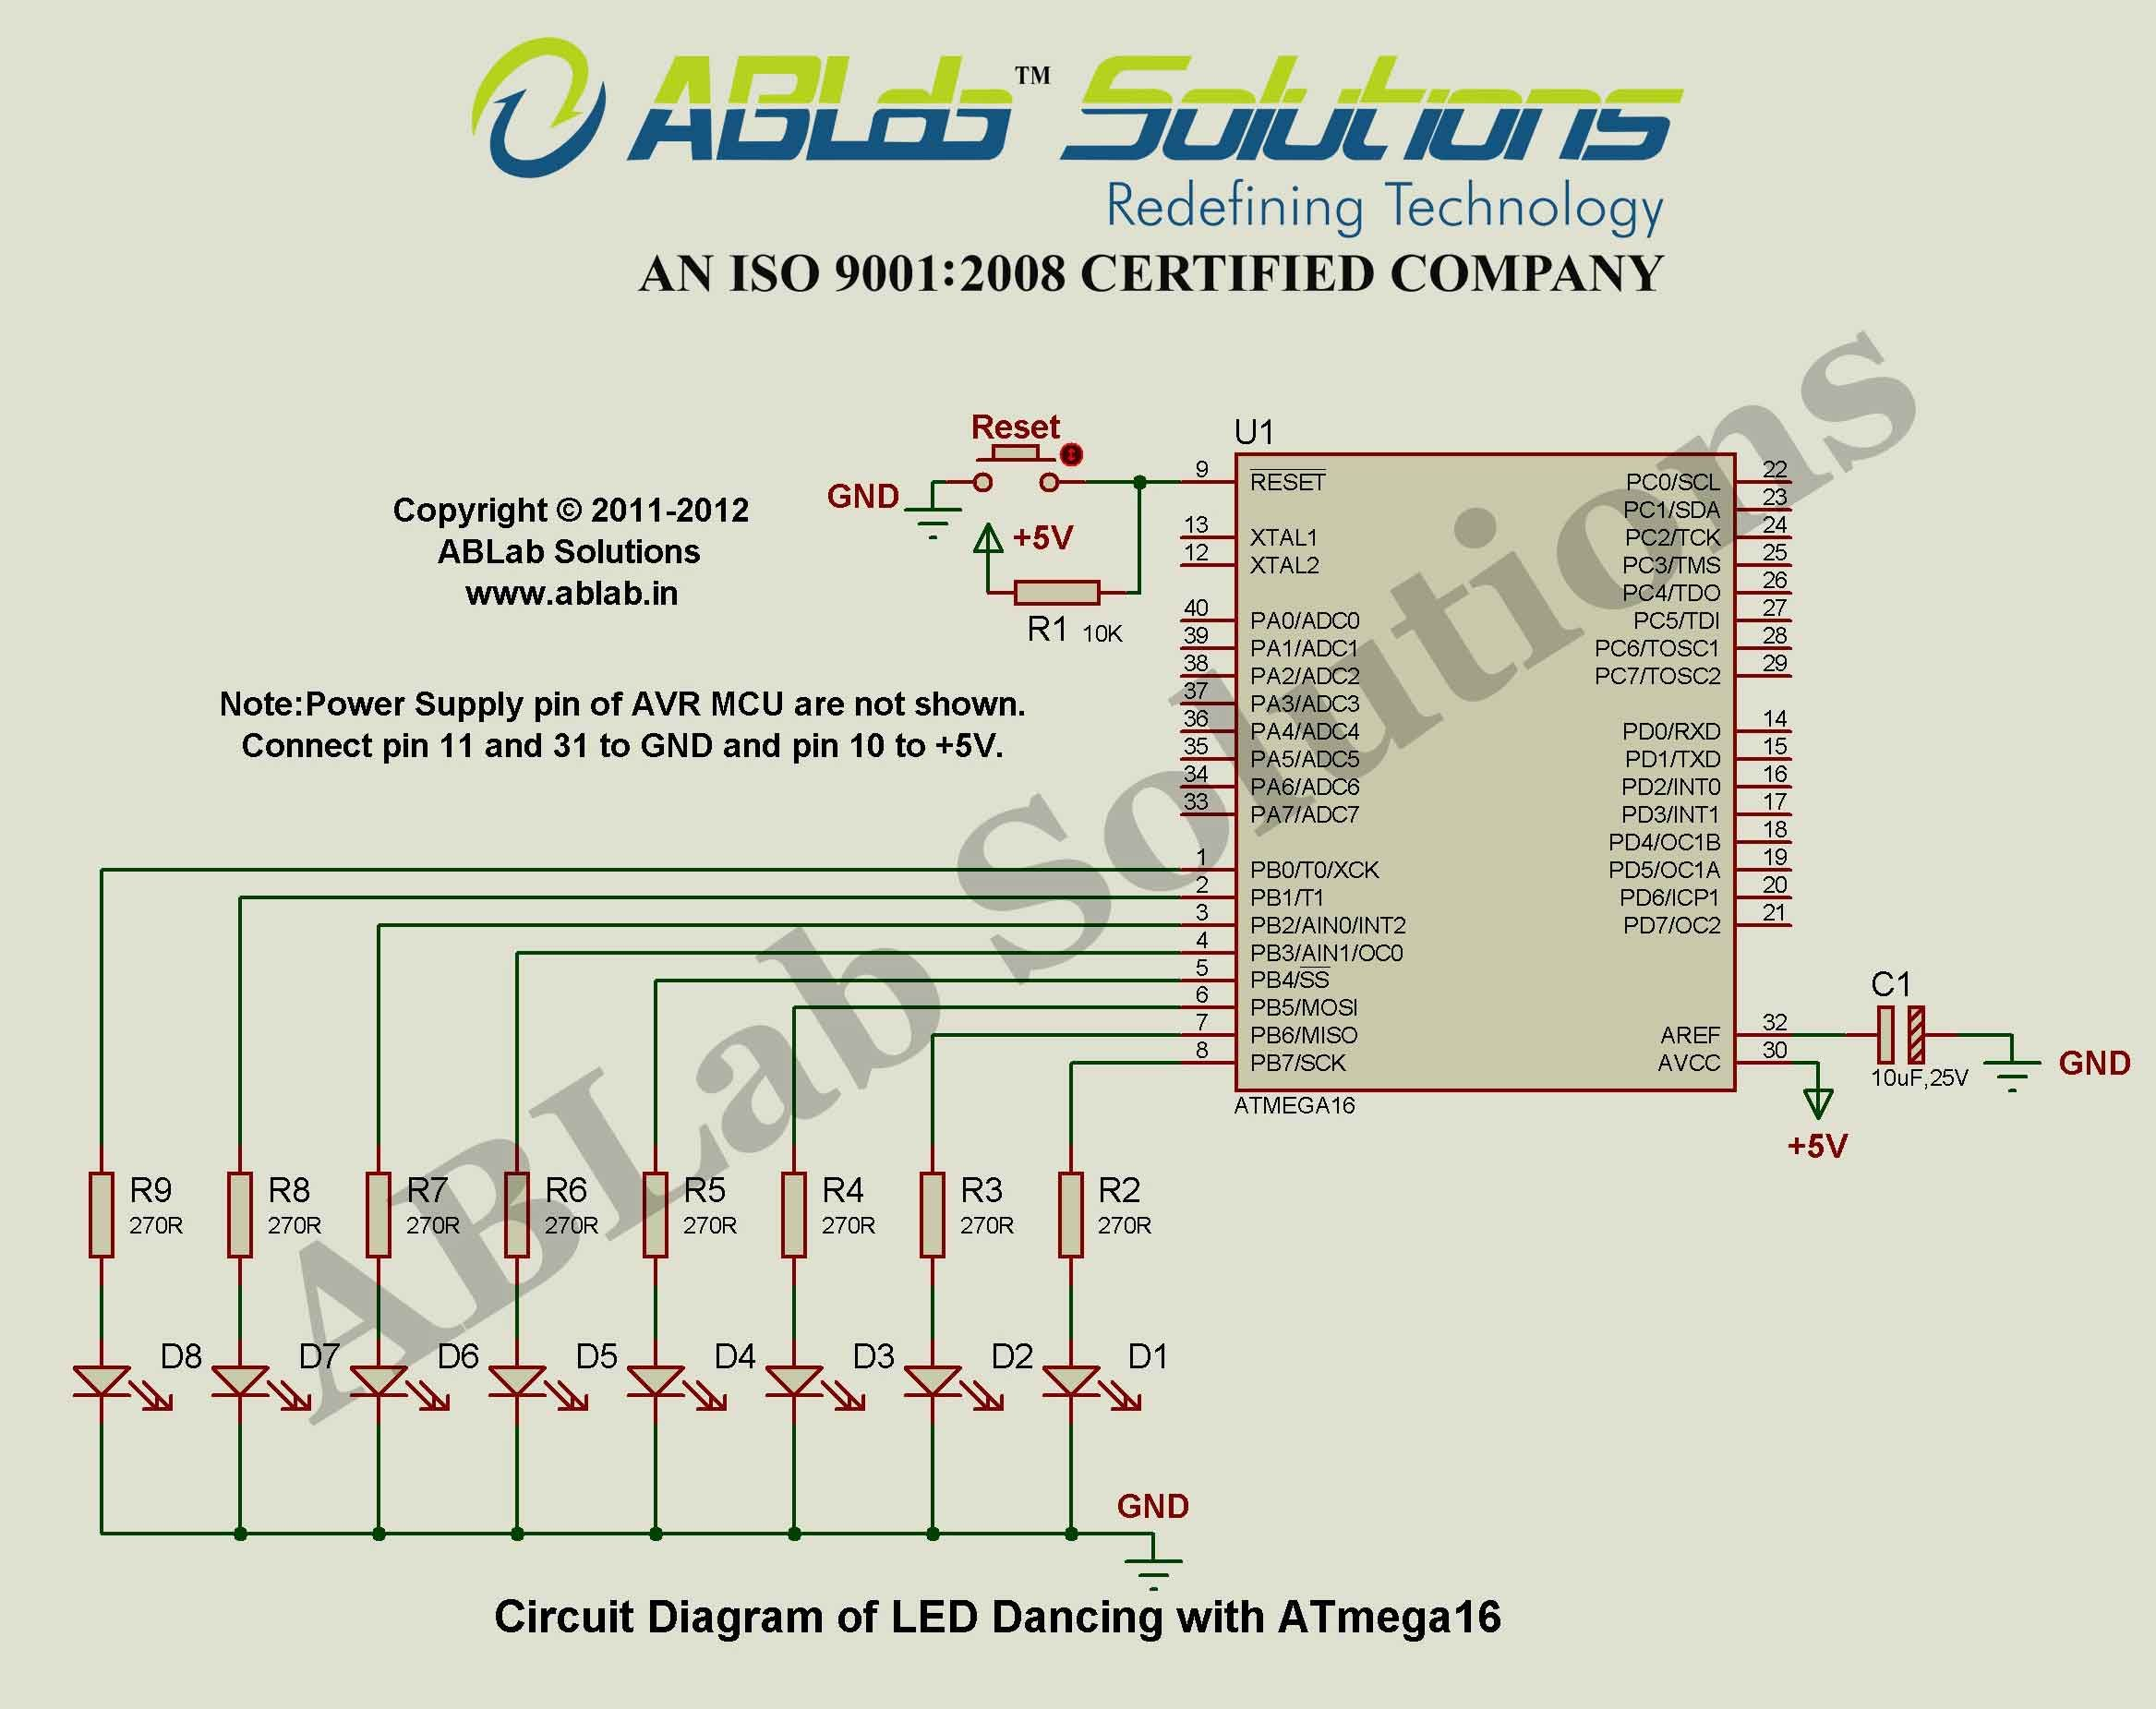 small resolution of led dancing with avr atmega16 microcontroller circuit diagram ablab solutions